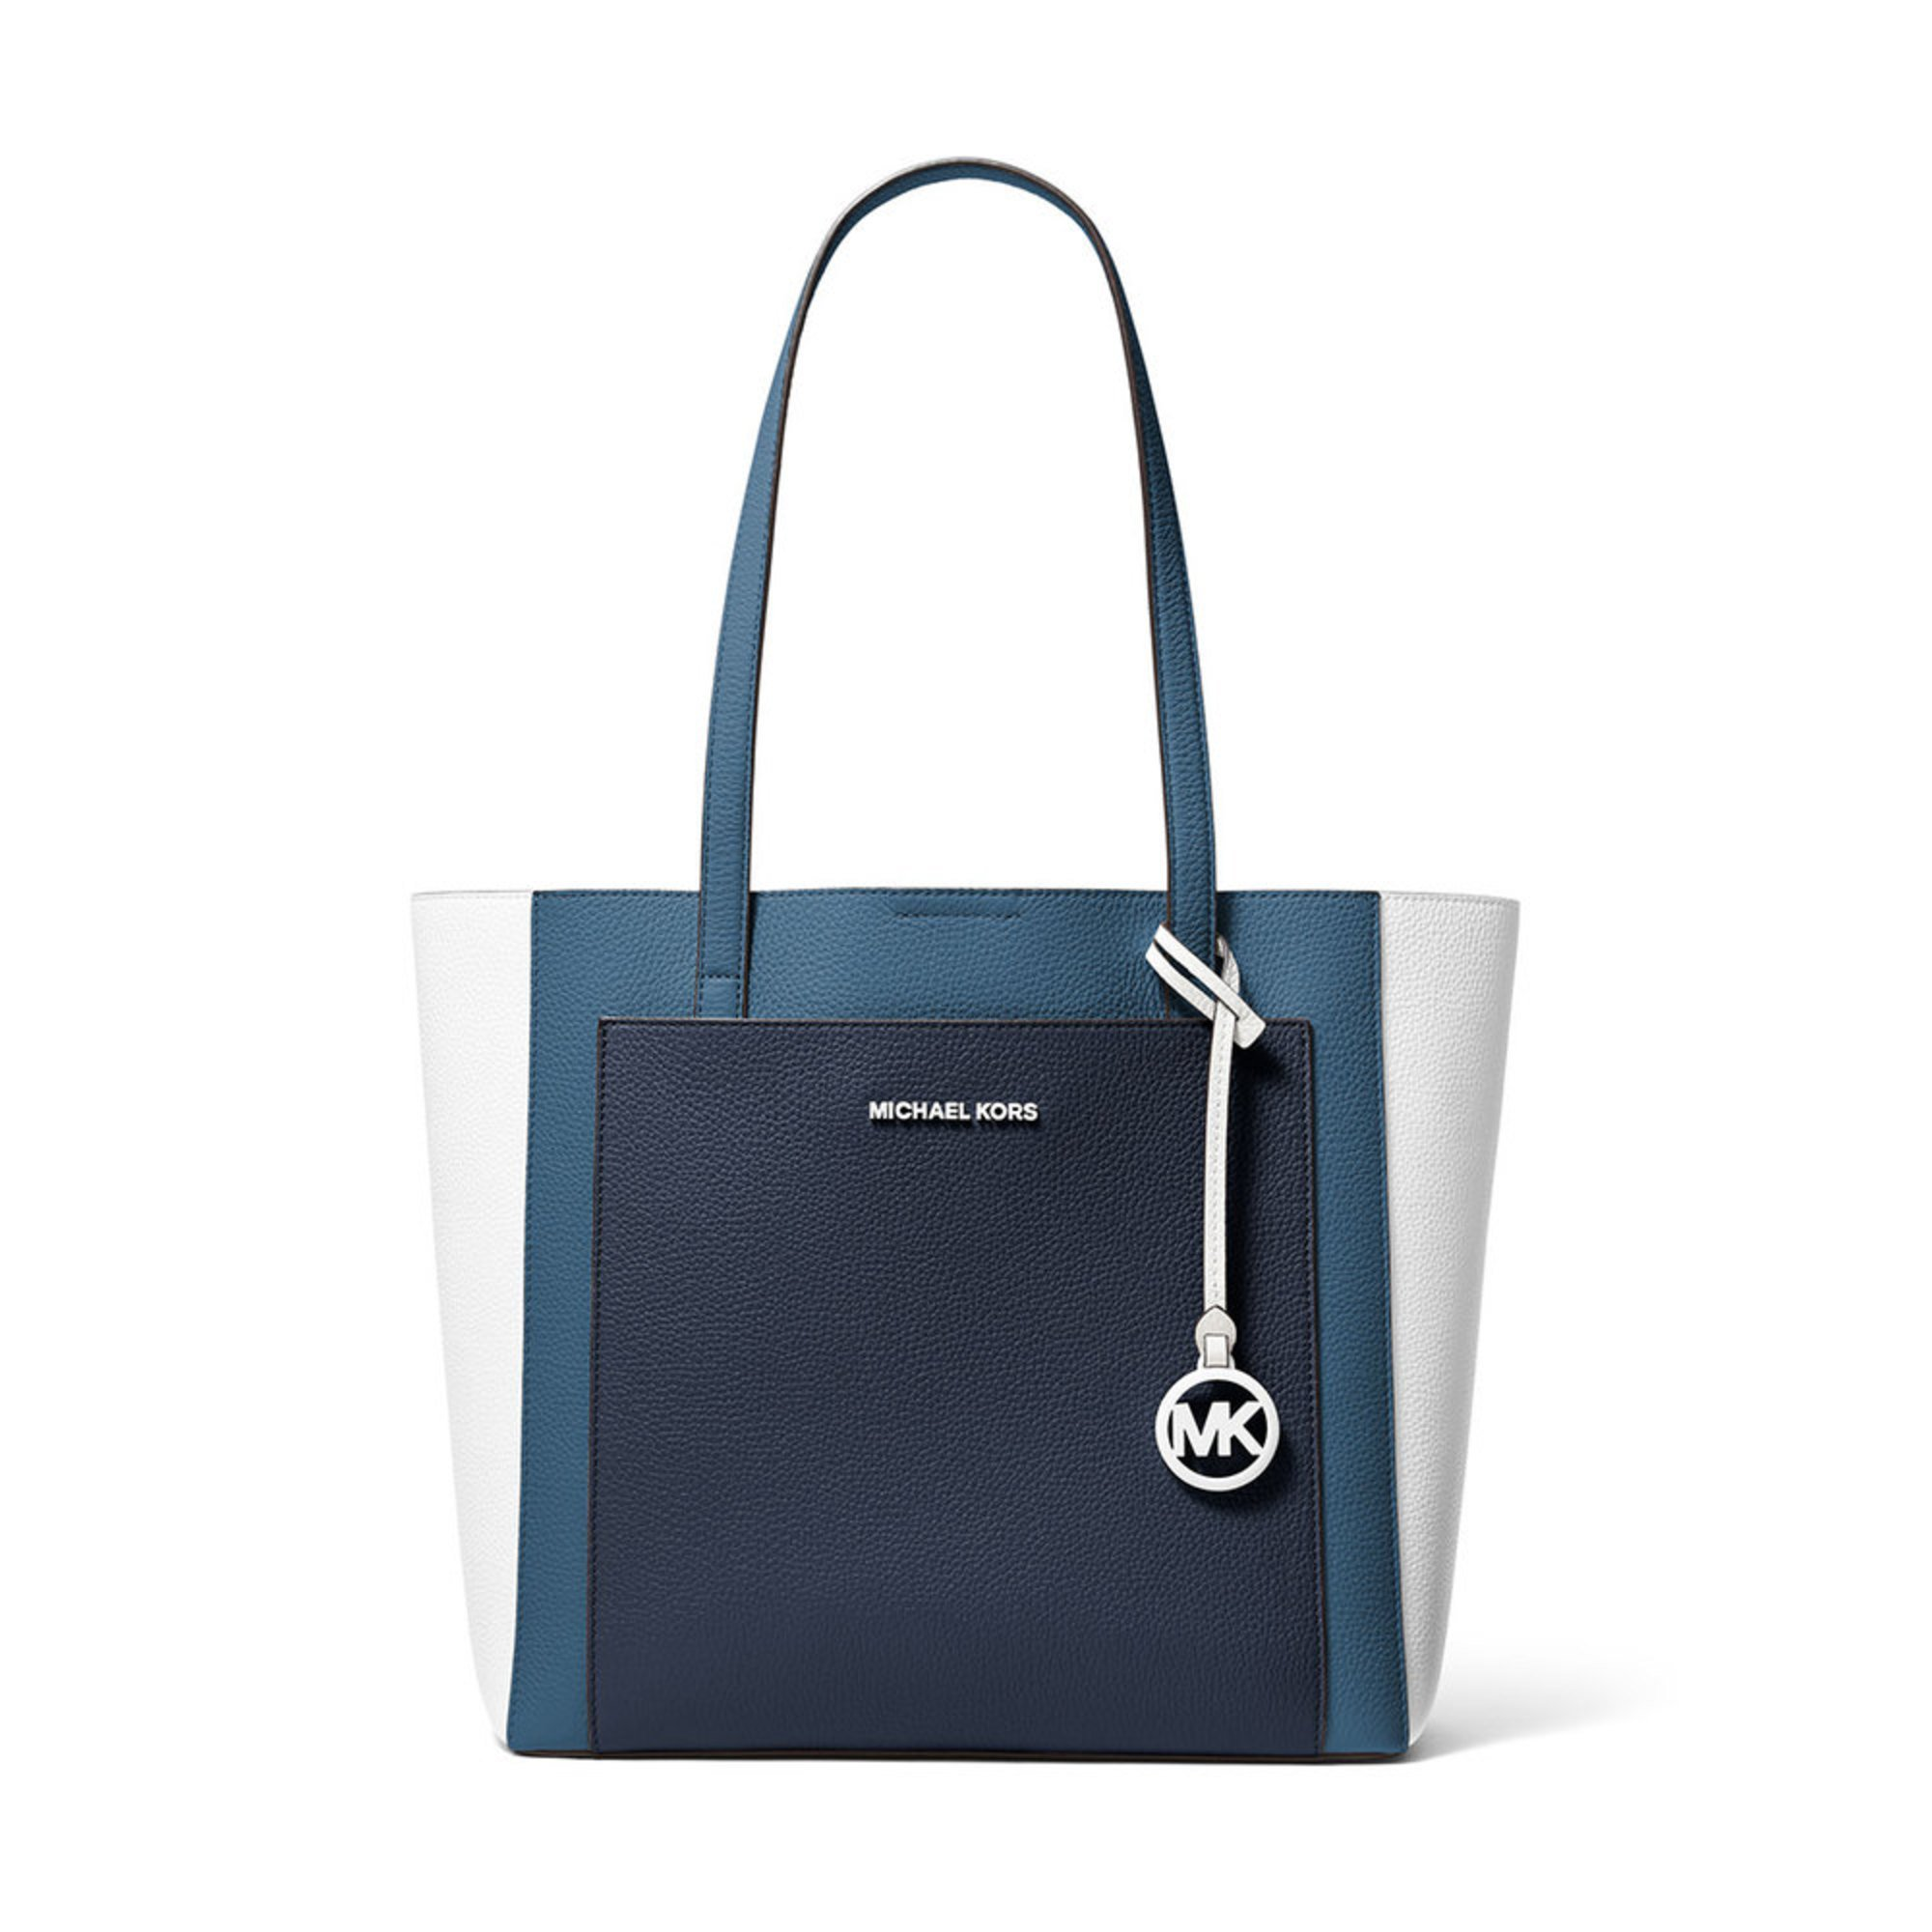 86a913c46bb6 Michael Kors Gemma Large Pocket Tote | Totes | Accessories - Shop Your Navy  Exchange - Official Site